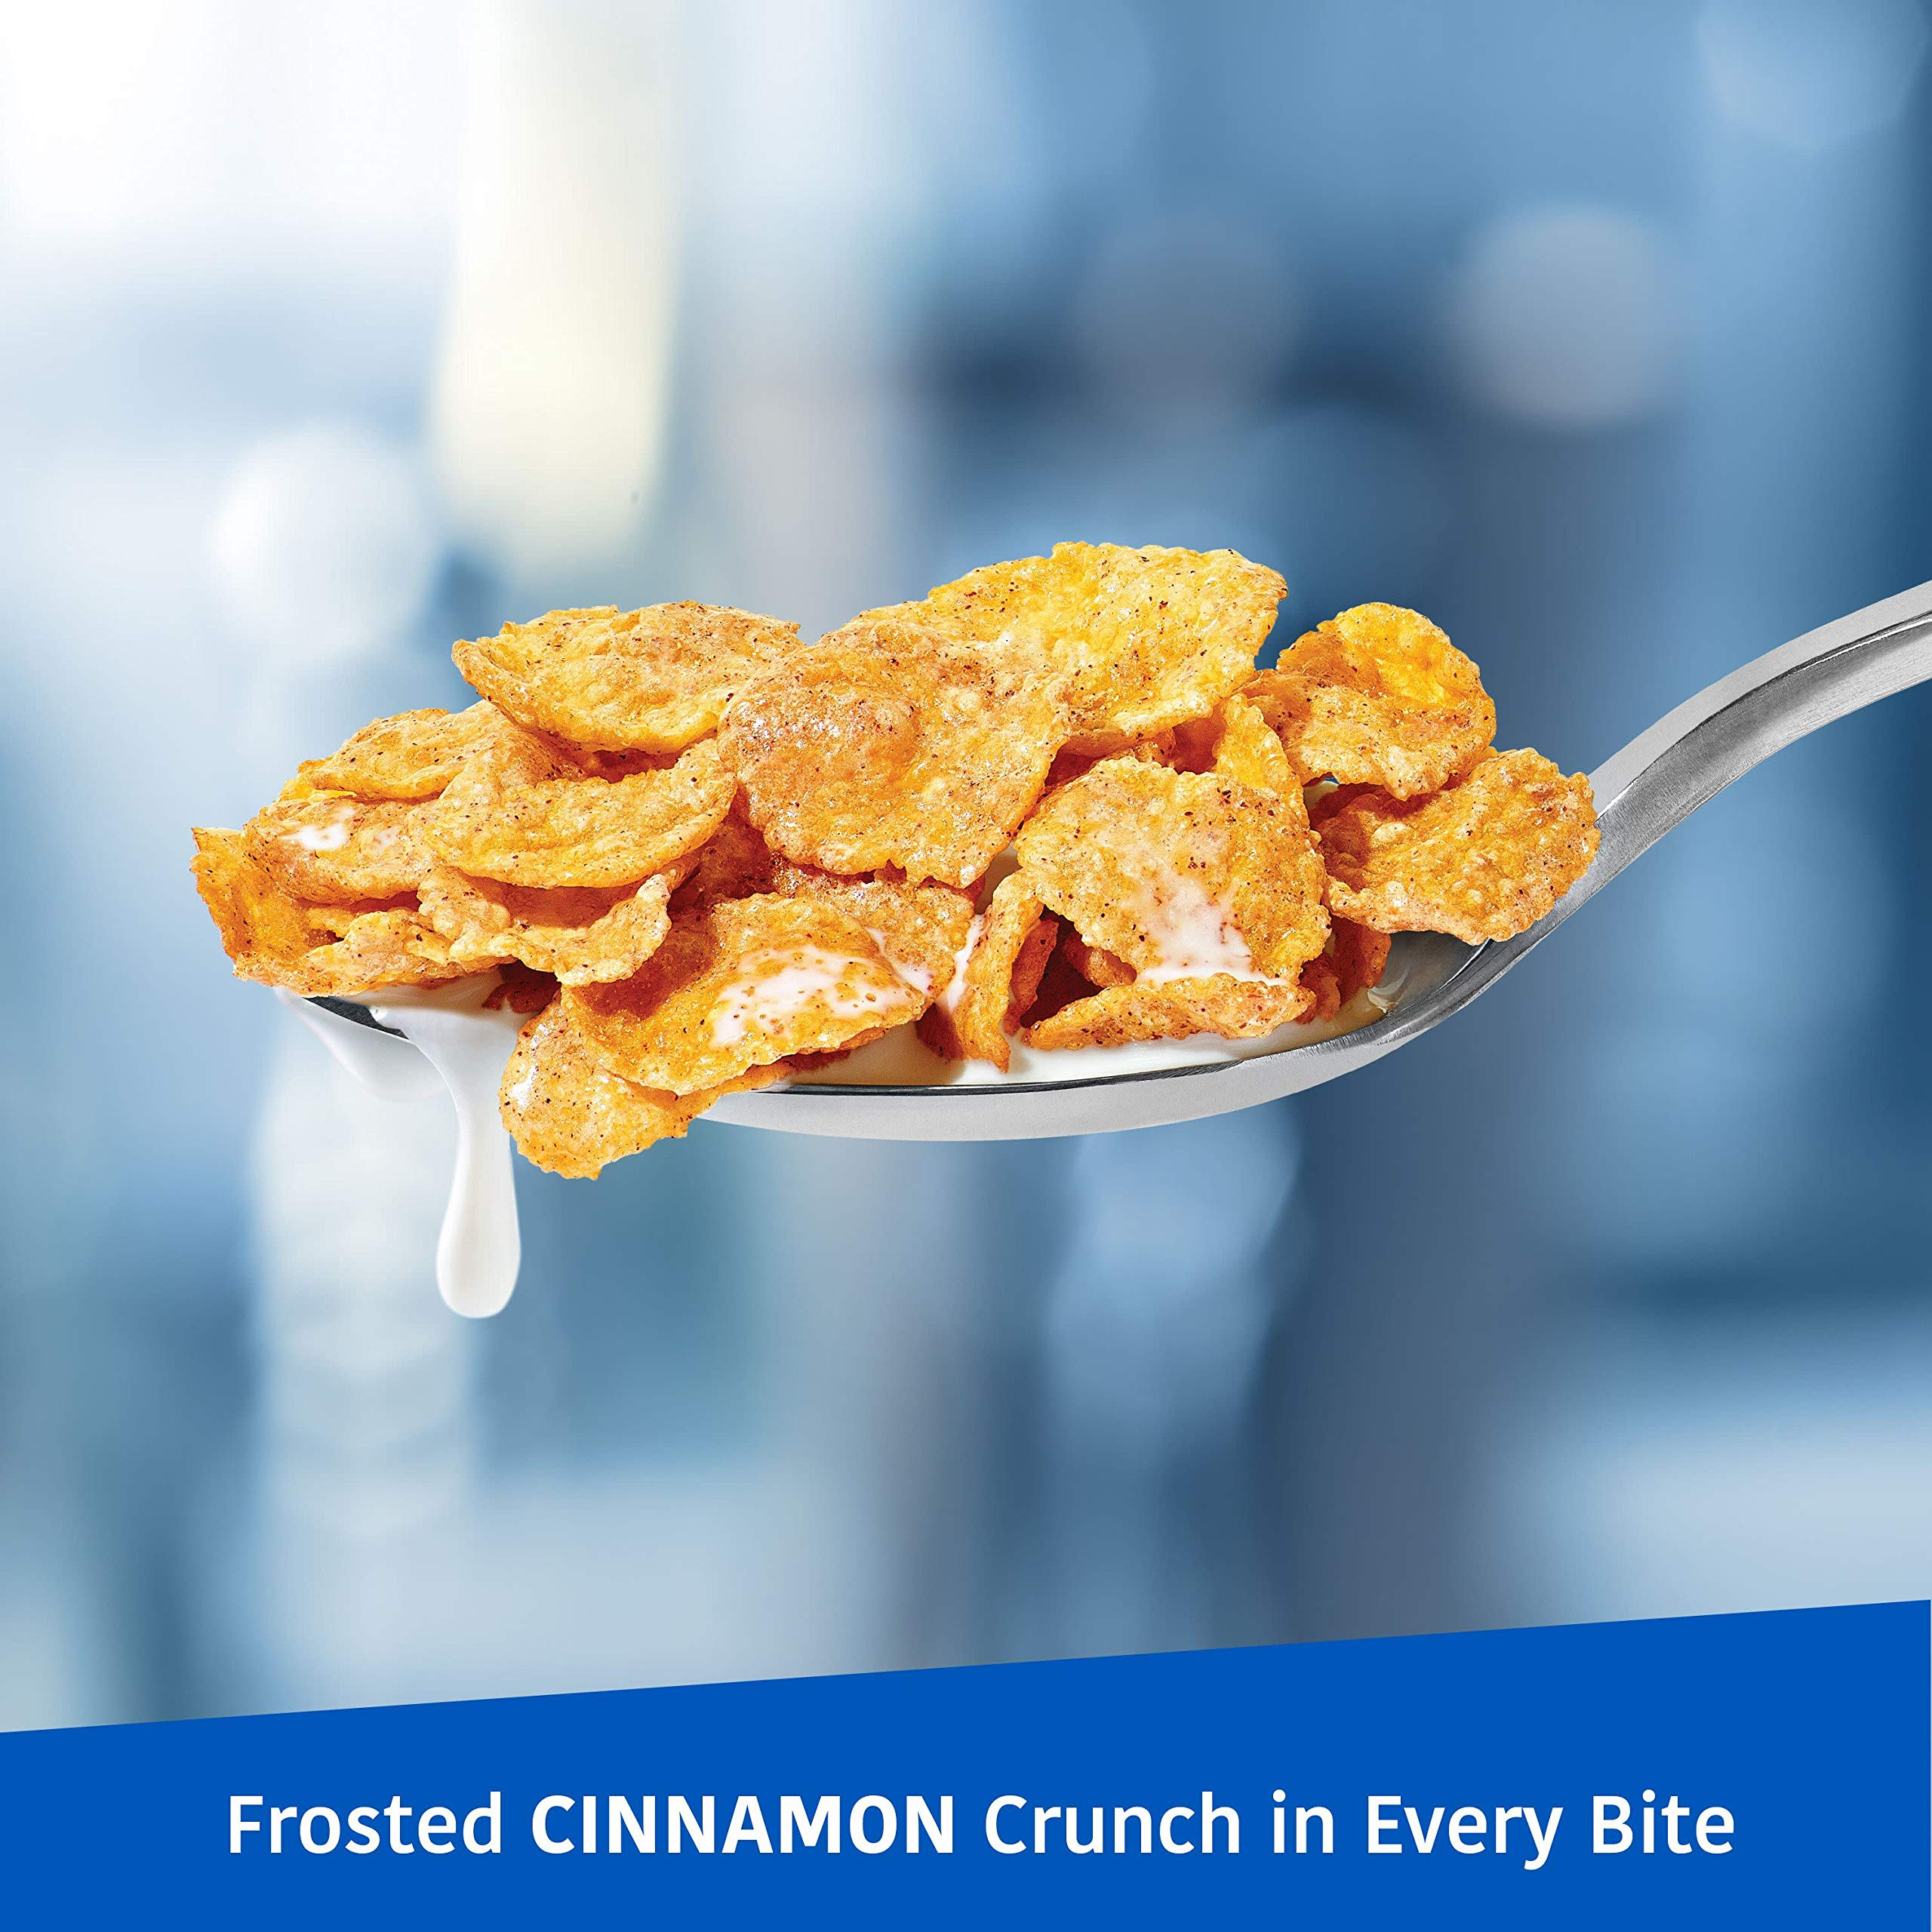 Kellogg's Breakfast Cereal, Frosted Flakes, Cinnamon, Fat-Free, 13.5 oz Box(Pack of 16) by Kellogg's (Image #5)